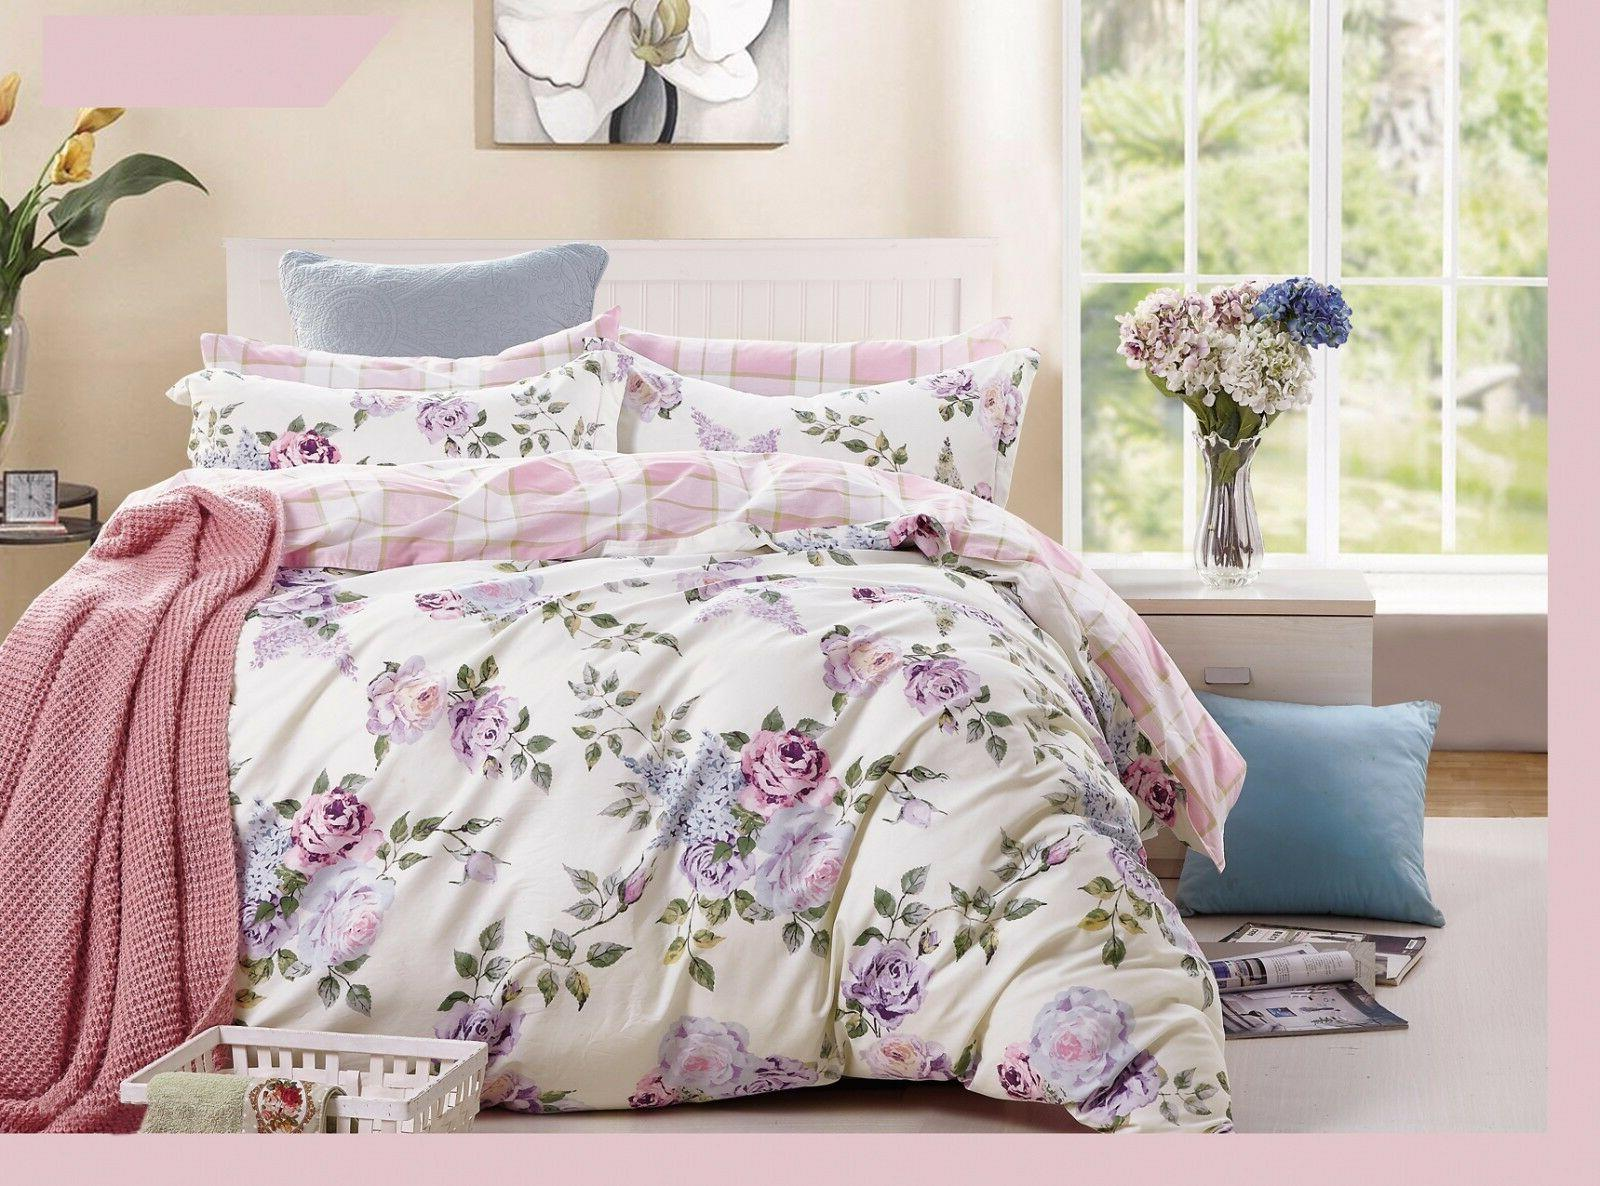 pink-purple rose cotton bedding set: duvet cover set, twin/f